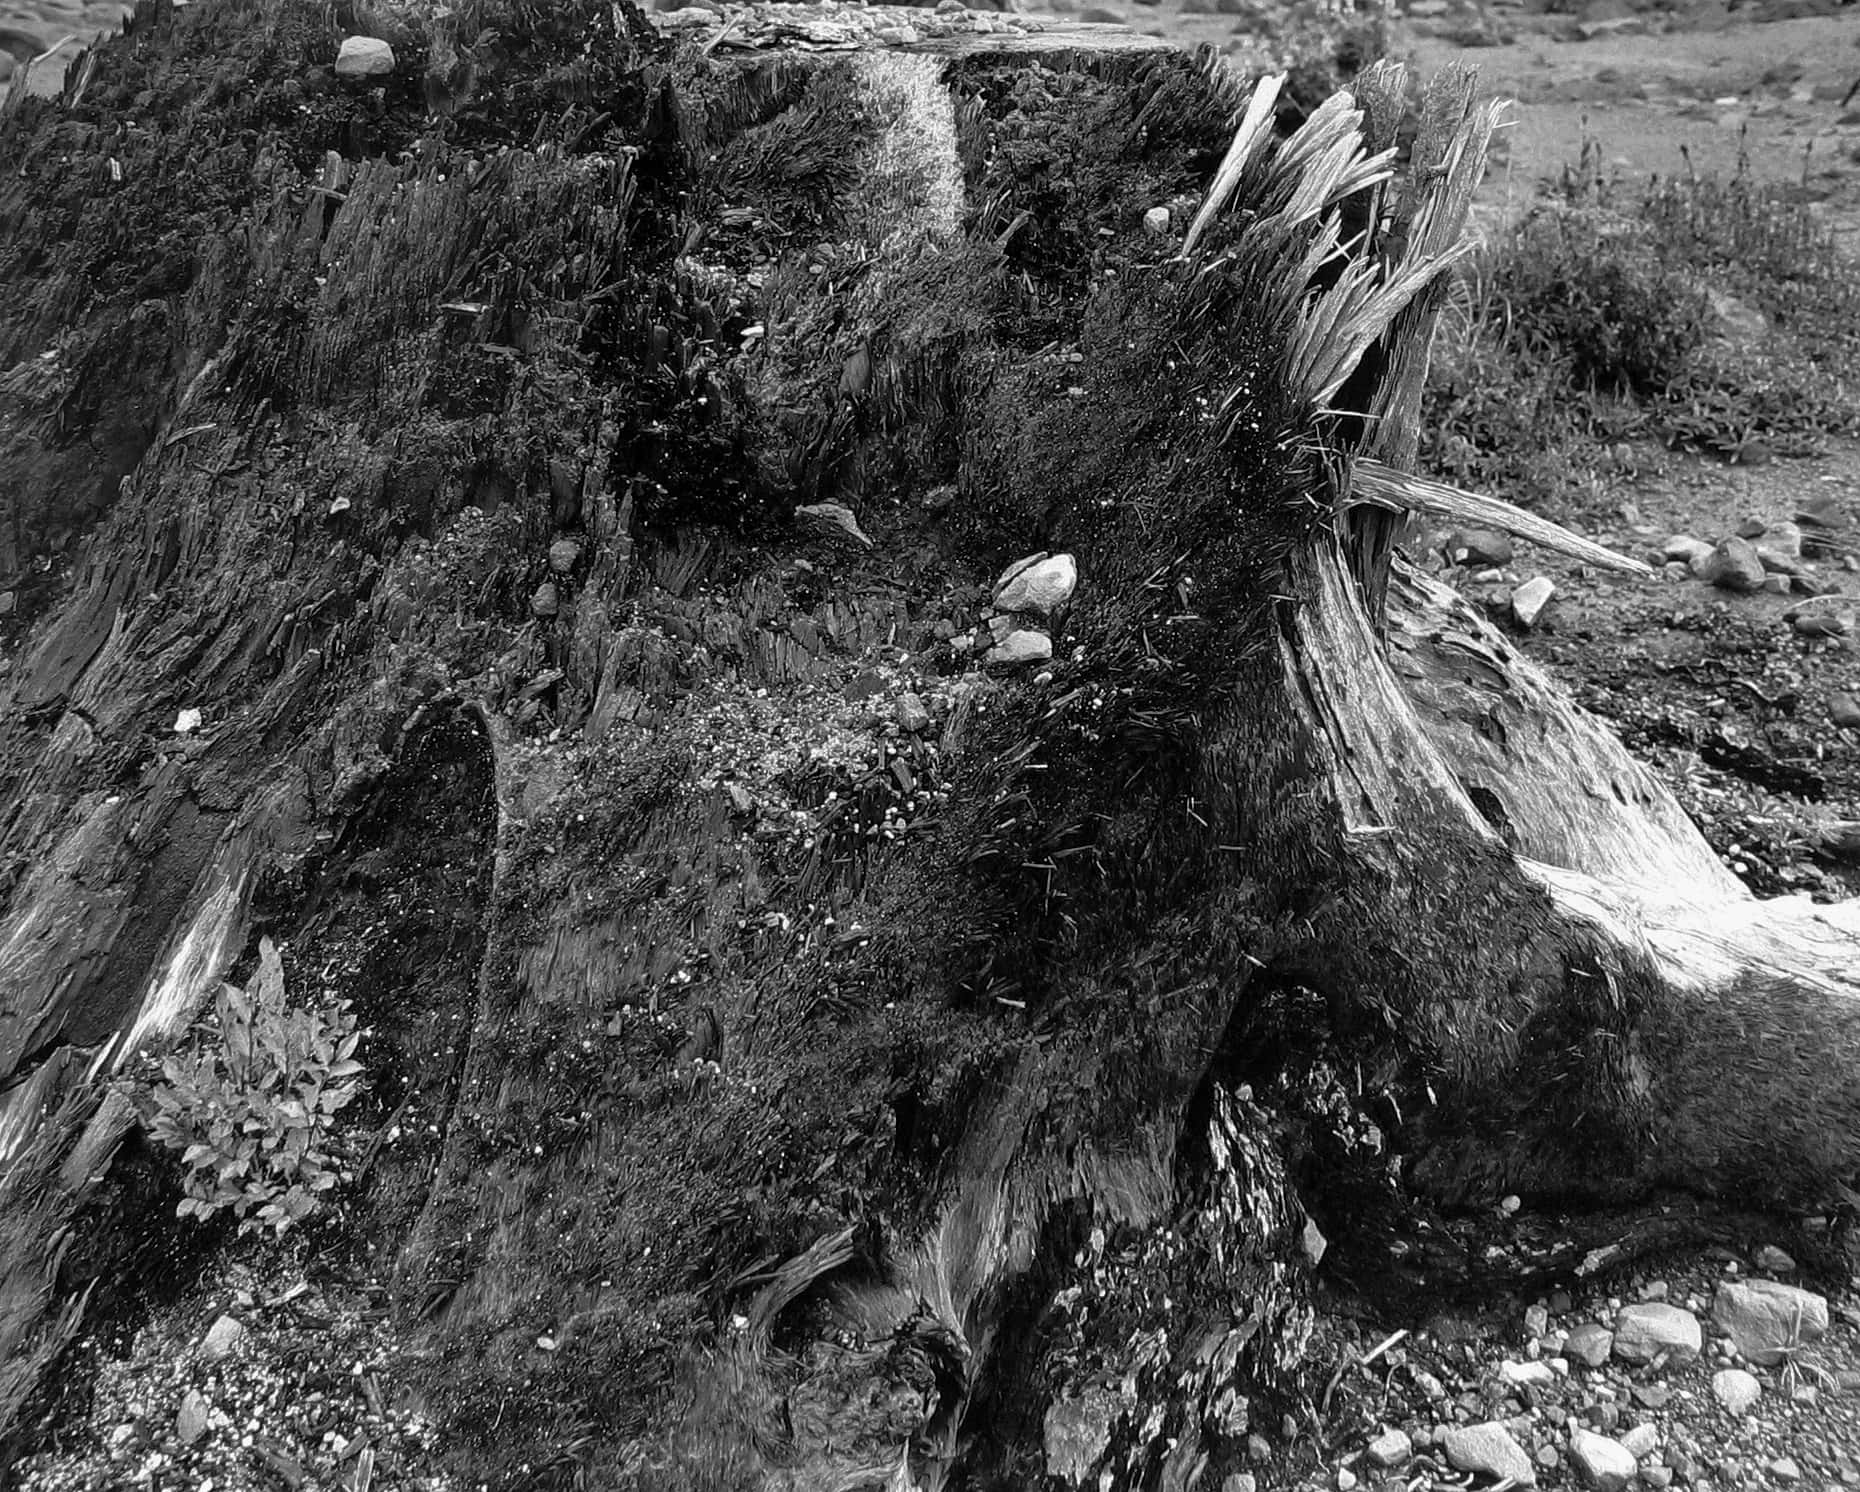 Tree stump battered by mudflow, on Lahar (mudflow area), 6 miles SE of Mt. St. Helens, Wash., 1983